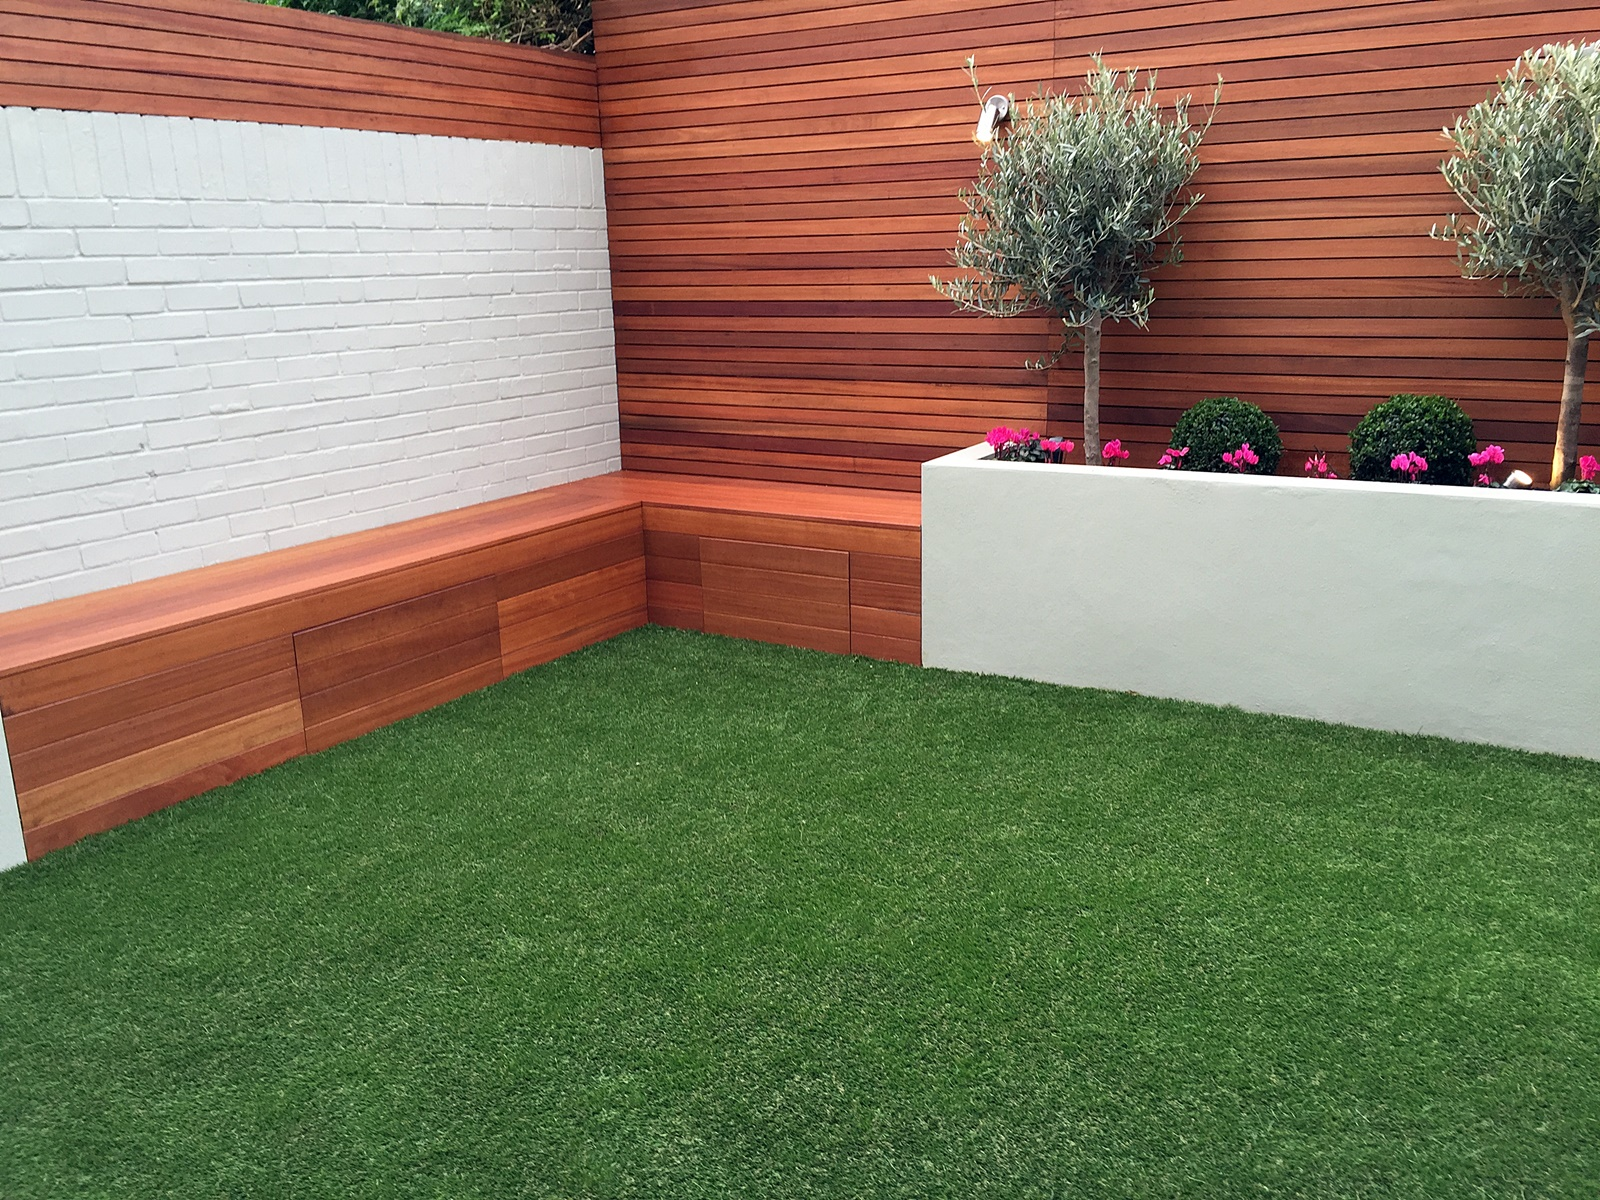 Simple modern court yard garden designer battersea fulham for Garden design ideas in uk